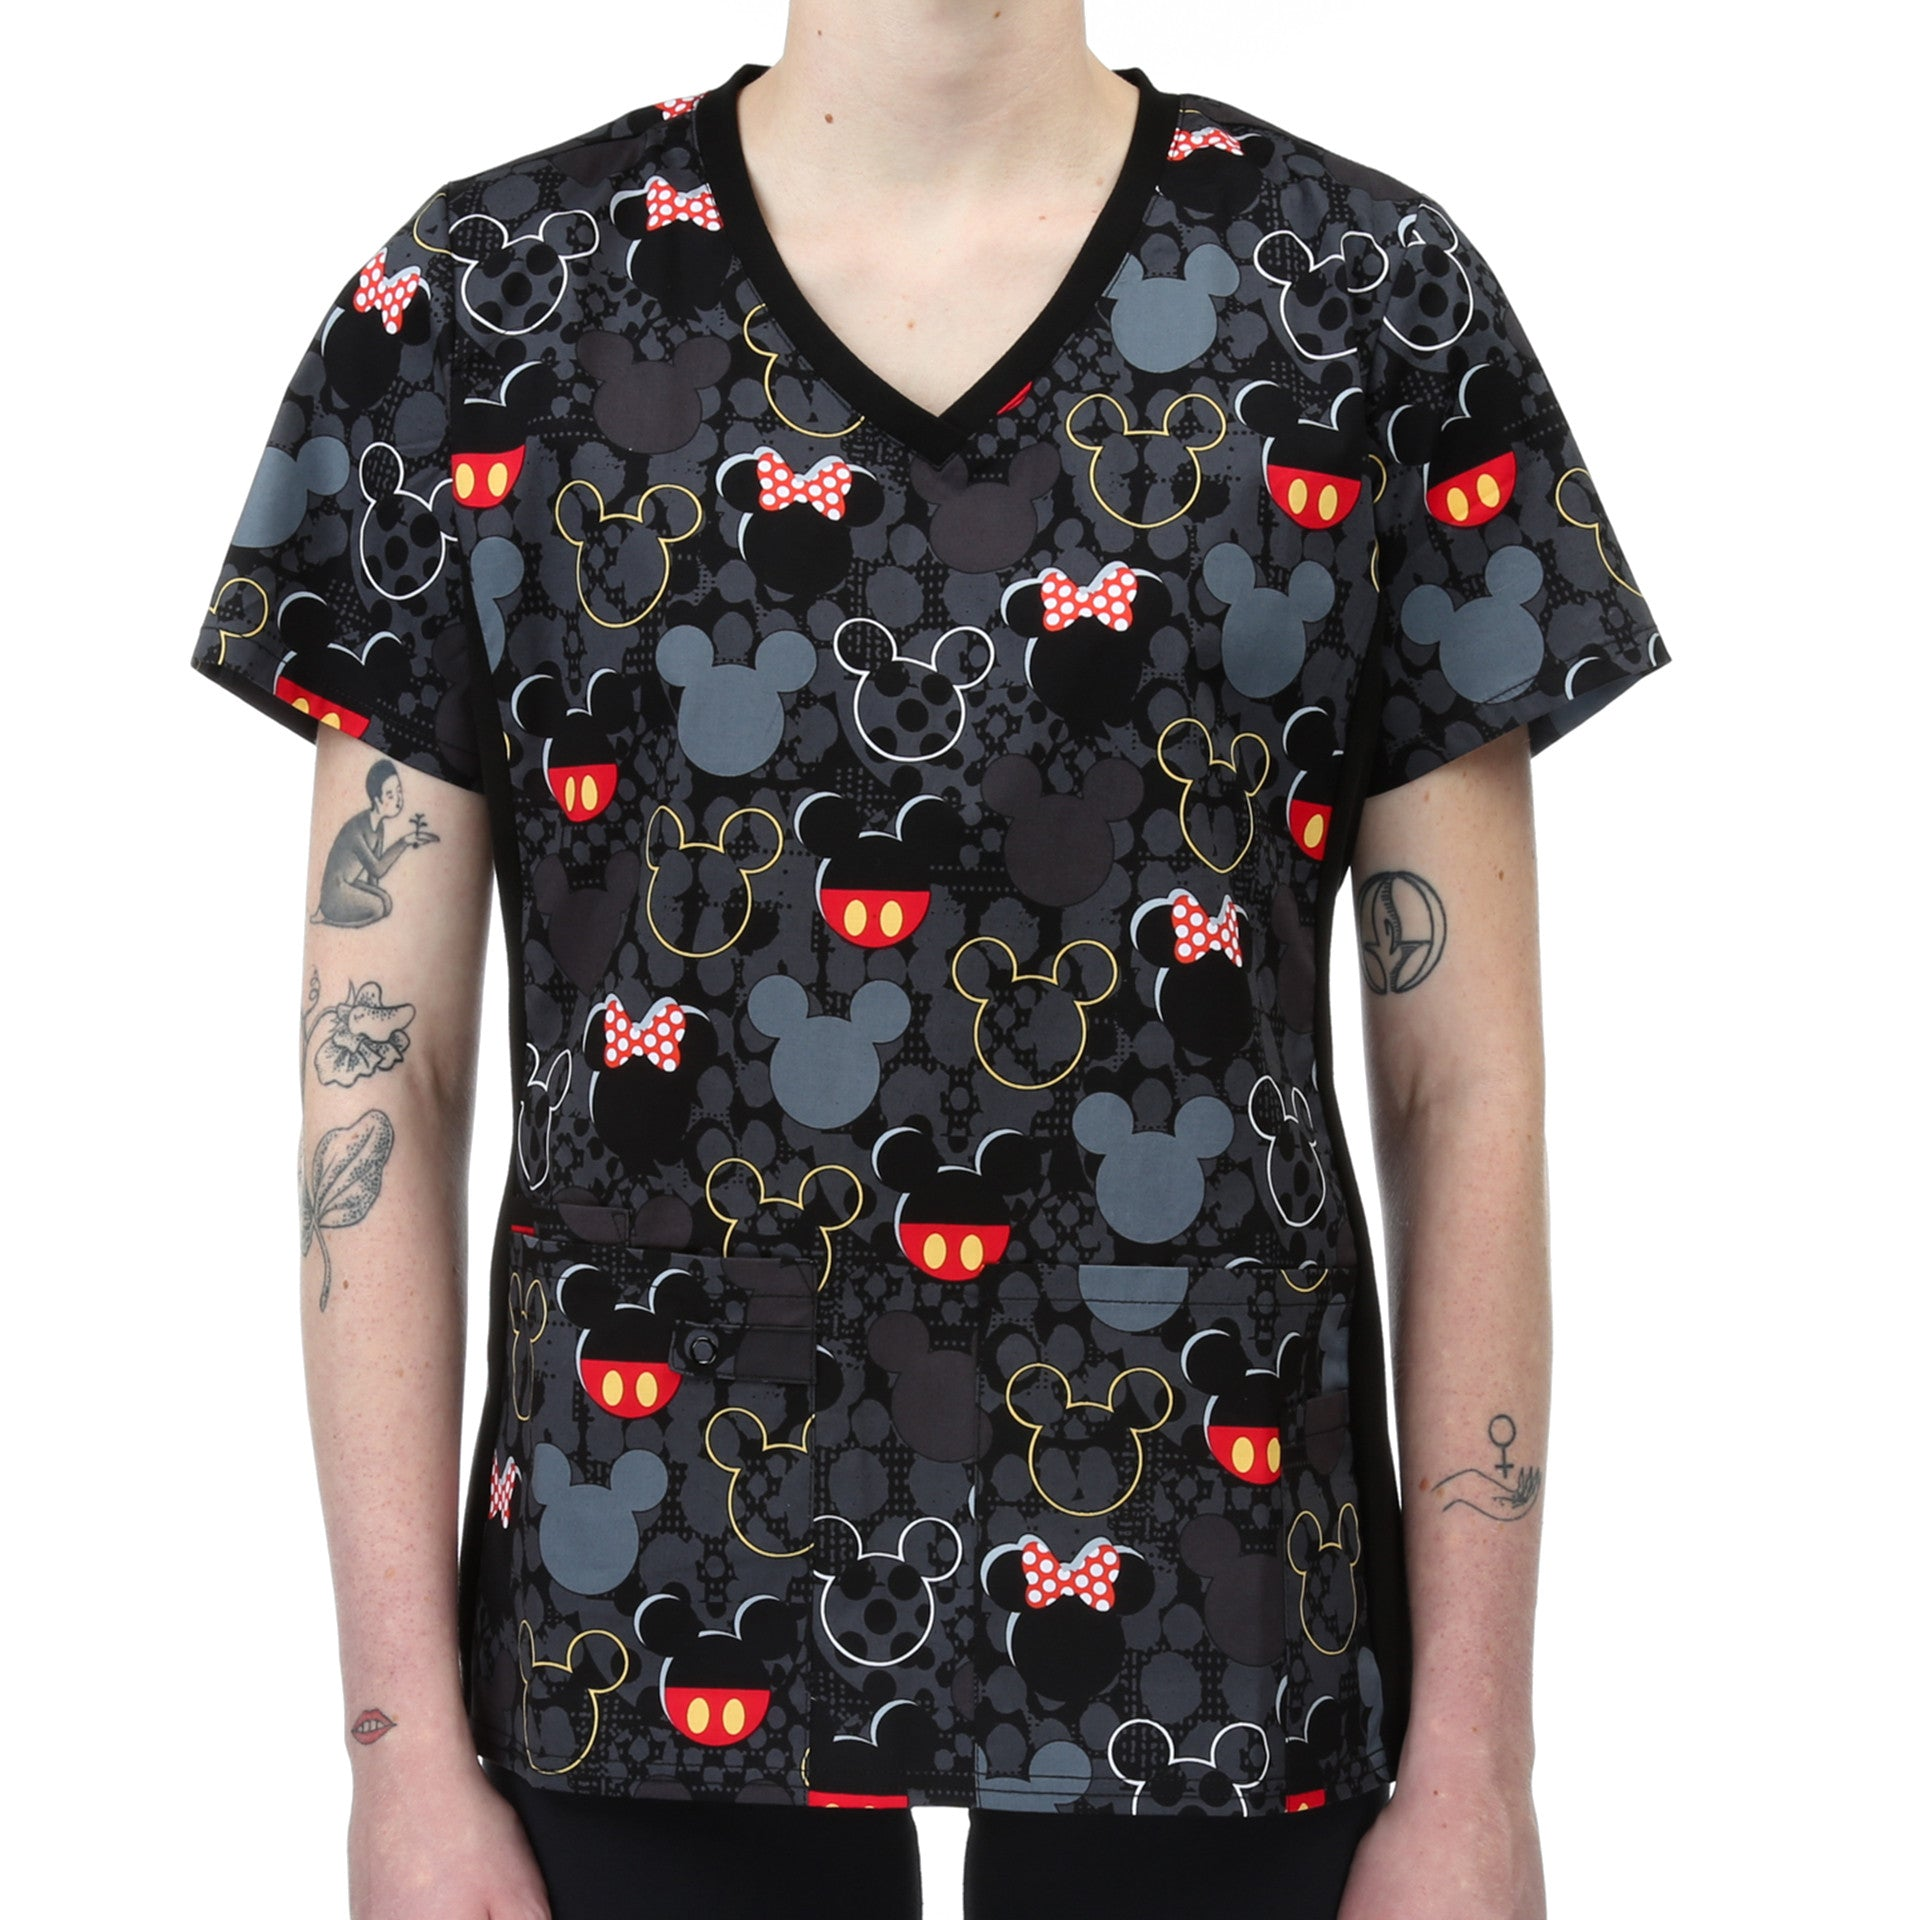 d747fc980be Cherokee Tooniforms Disney Scrub Top - Button and Bows - New Star